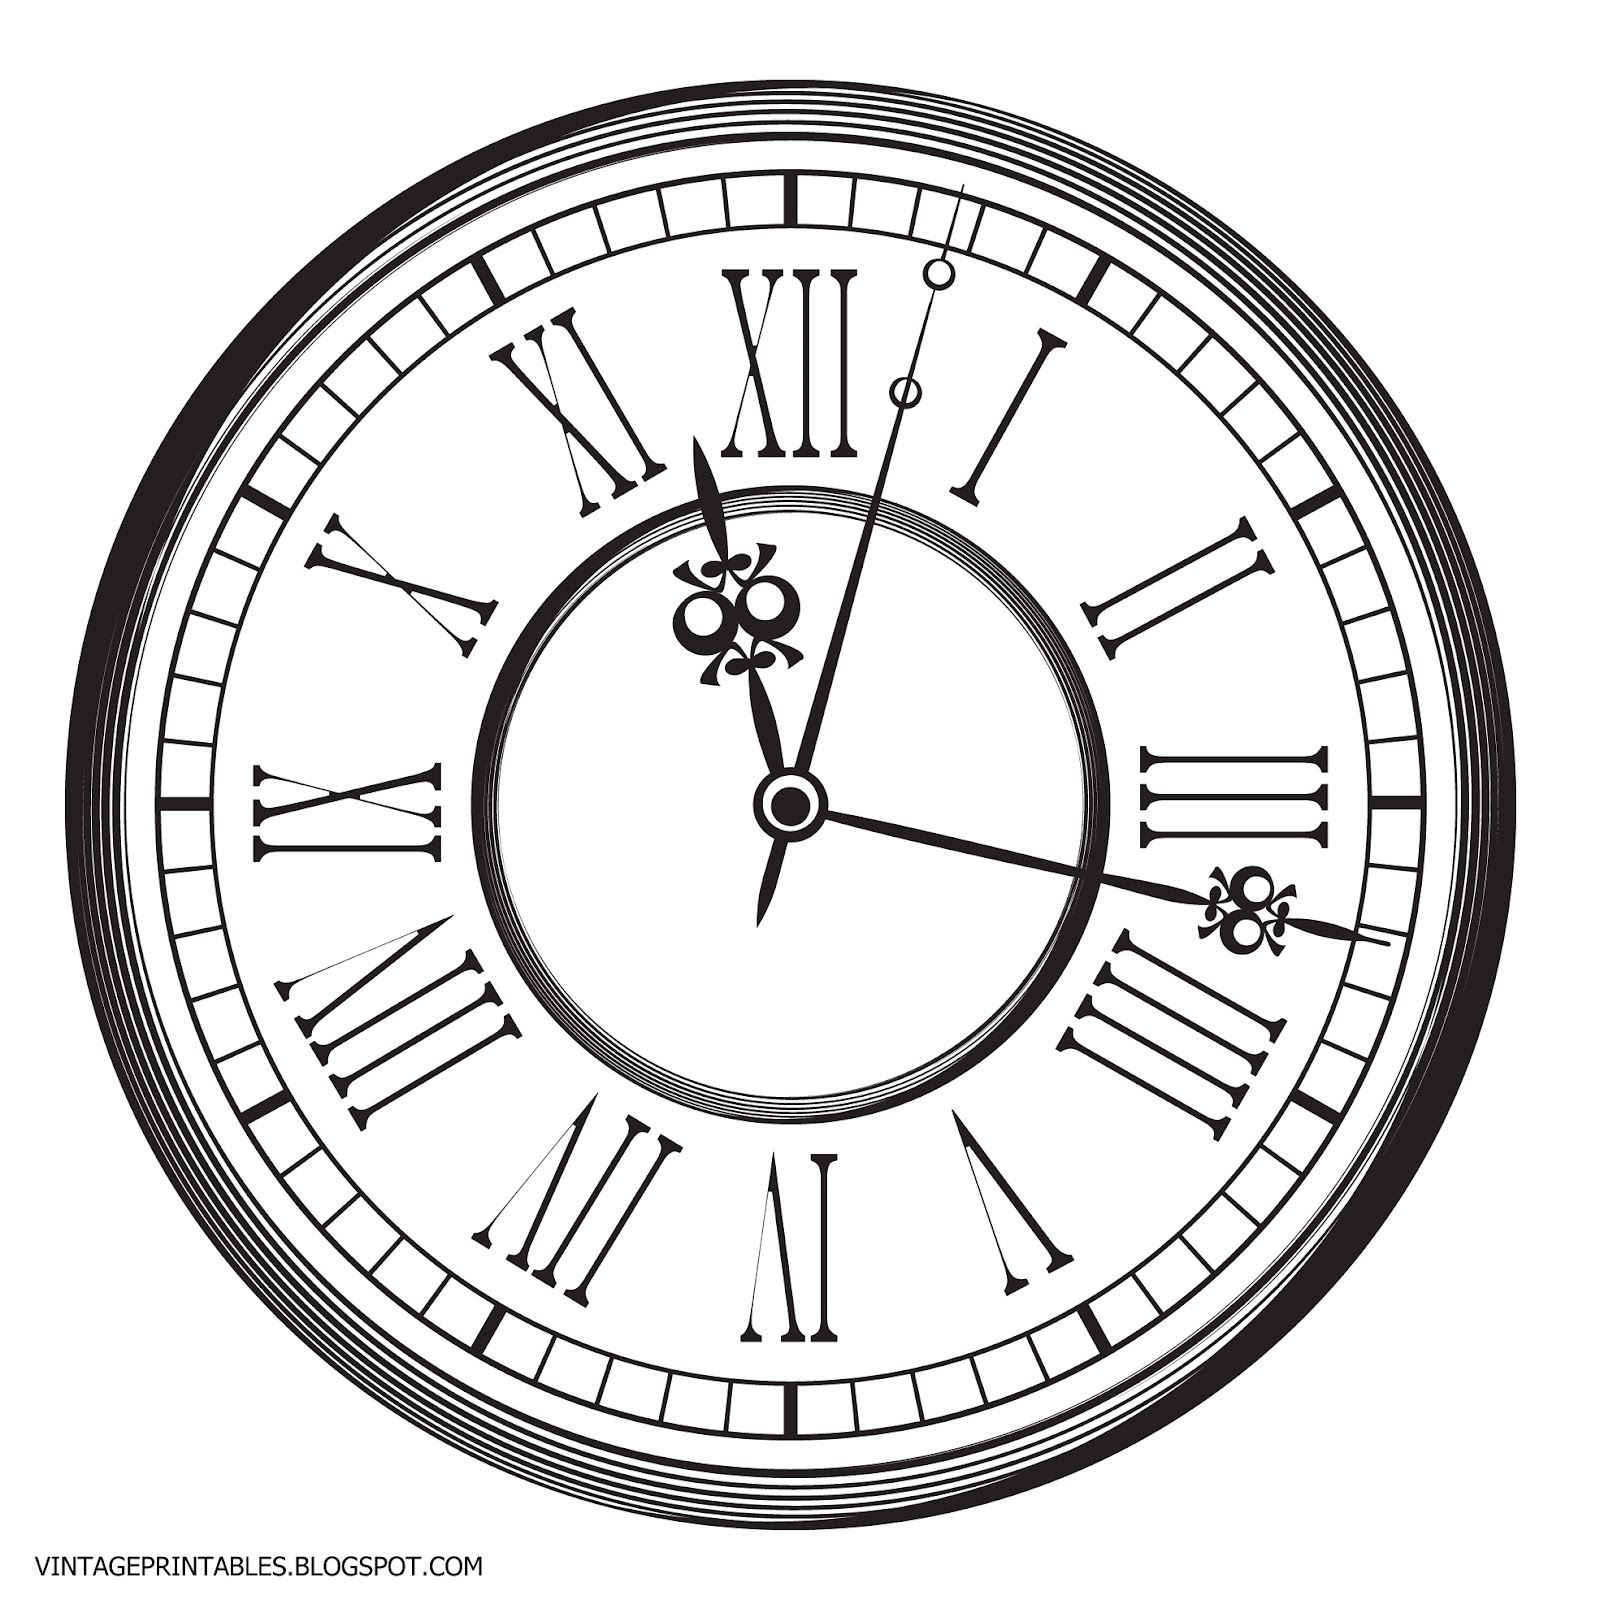 Steampunk clipart classic clock. Free vintage clip art